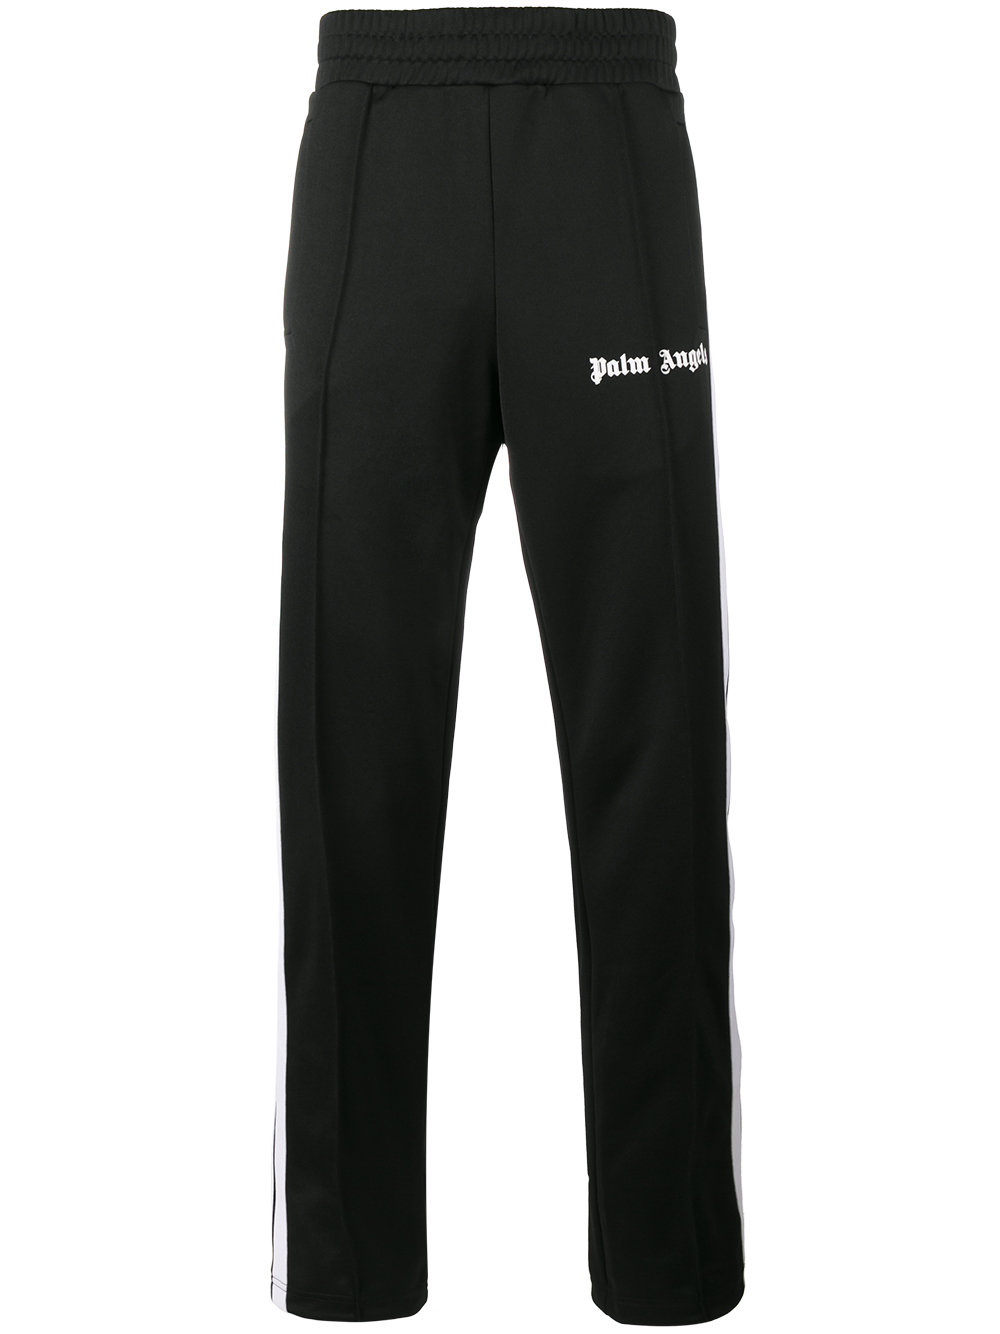 Palm Angels   Black Track Pant